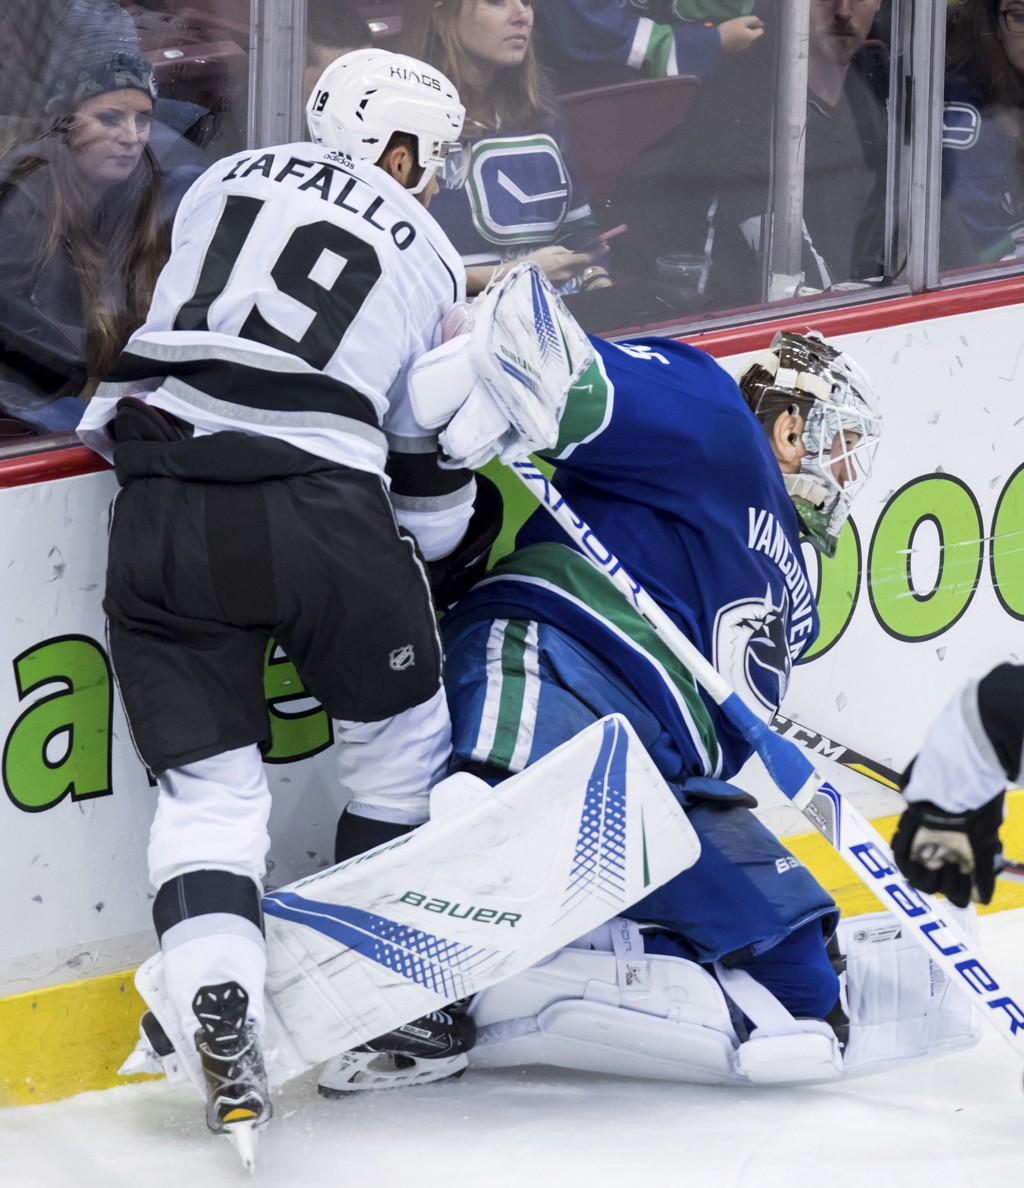 Los Angeles Kings' Alex Iafallo, left, skates up against Vancouver Canucks goalie Jacob Markstrom, of Sweden, during the second period of an NHL hocke...